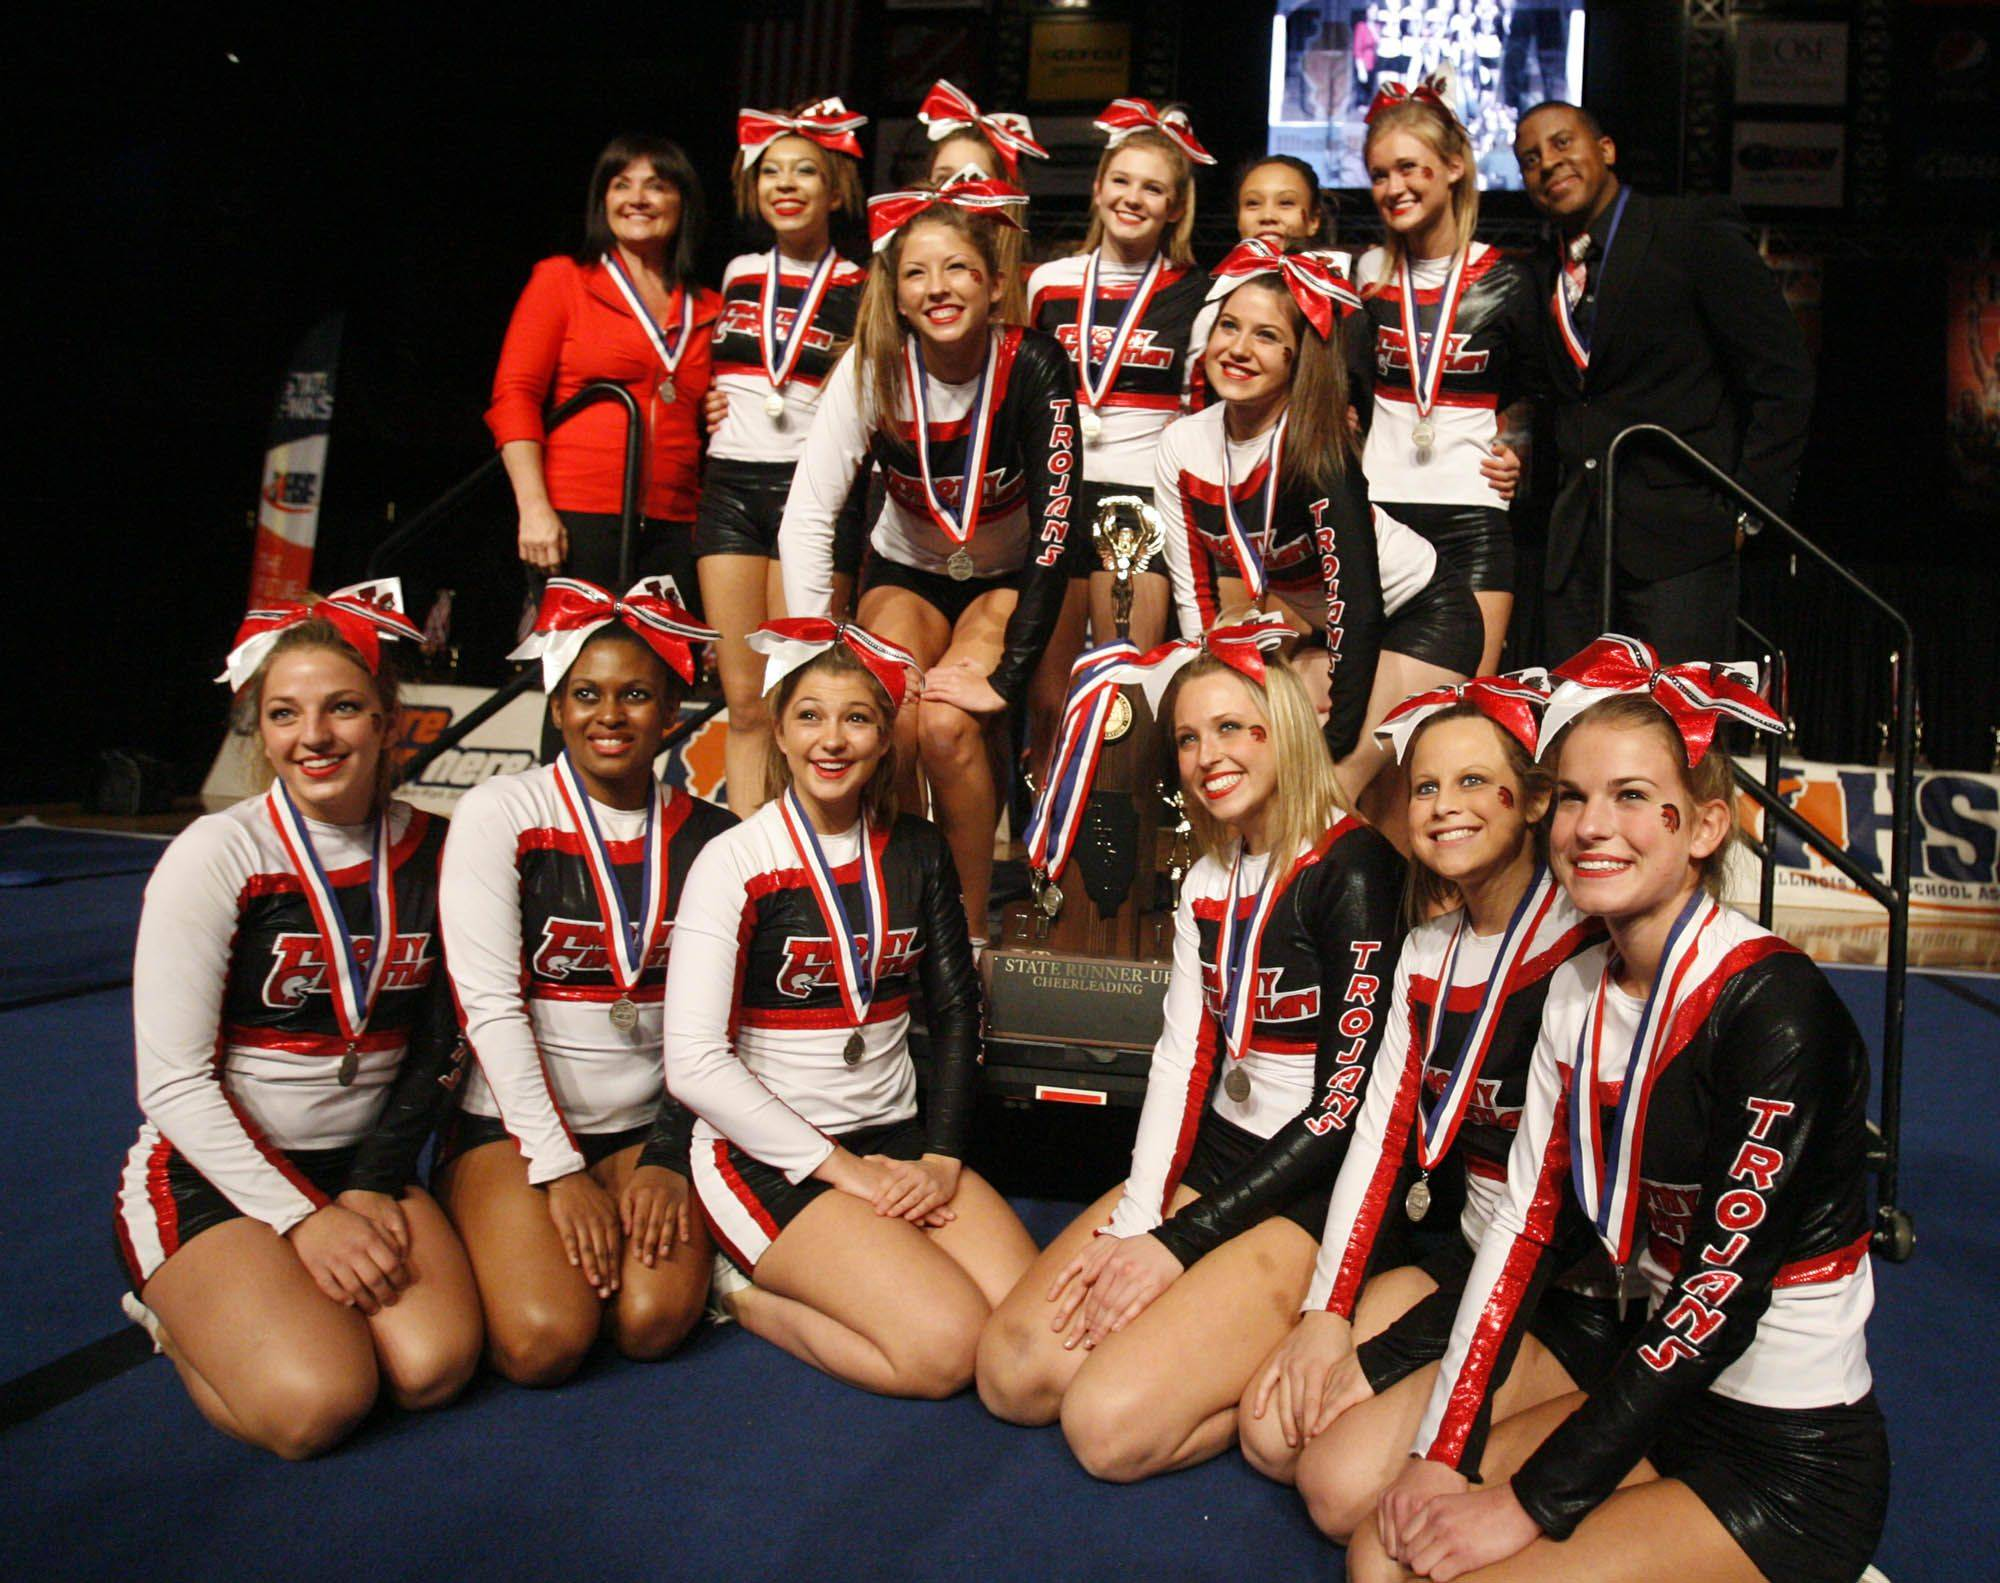 Timothy Christian with the second place at IHSA cheerleading state finals for the small school category at U.S. Cellular Coliseum in Bloomington on Saturday.